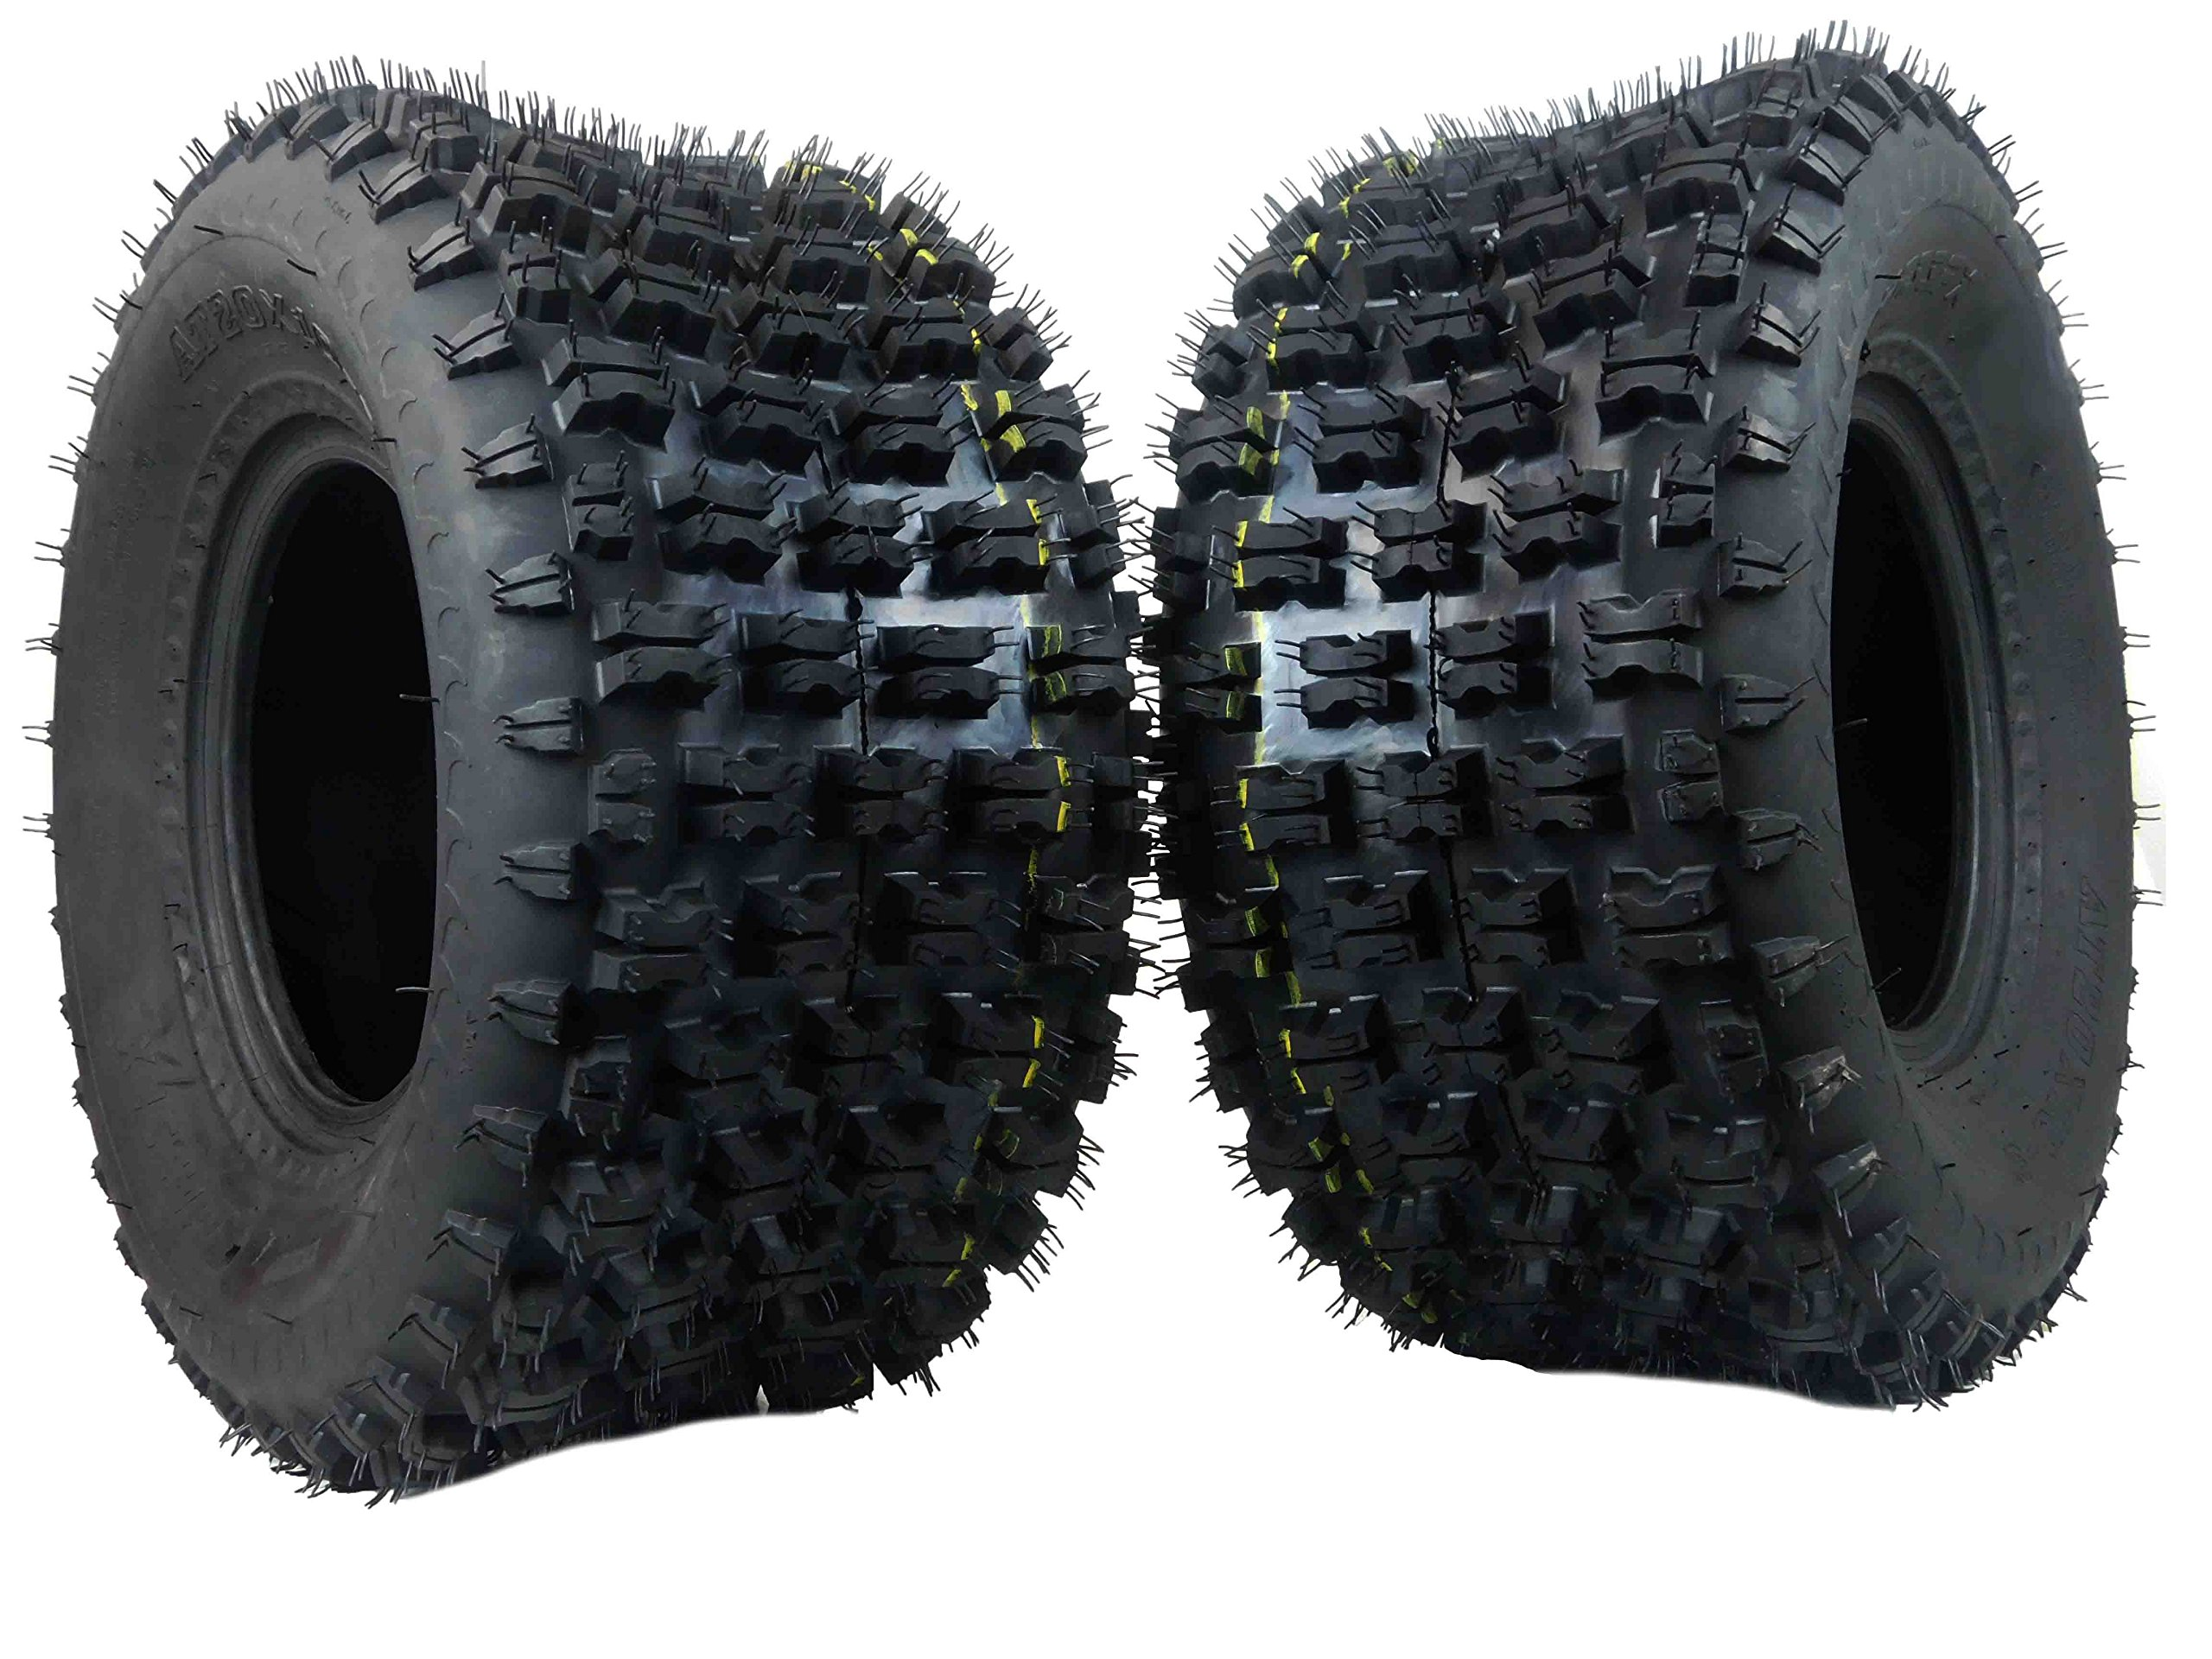 New MASSFX ATV Sport Quad Tires Two Rear 20X10-9 4 Ply Tires For Yamaha Raptor Banshee Honda 400ex 450r 660 700 400 450 350 250 (Set of 2 rear 20x10-9)